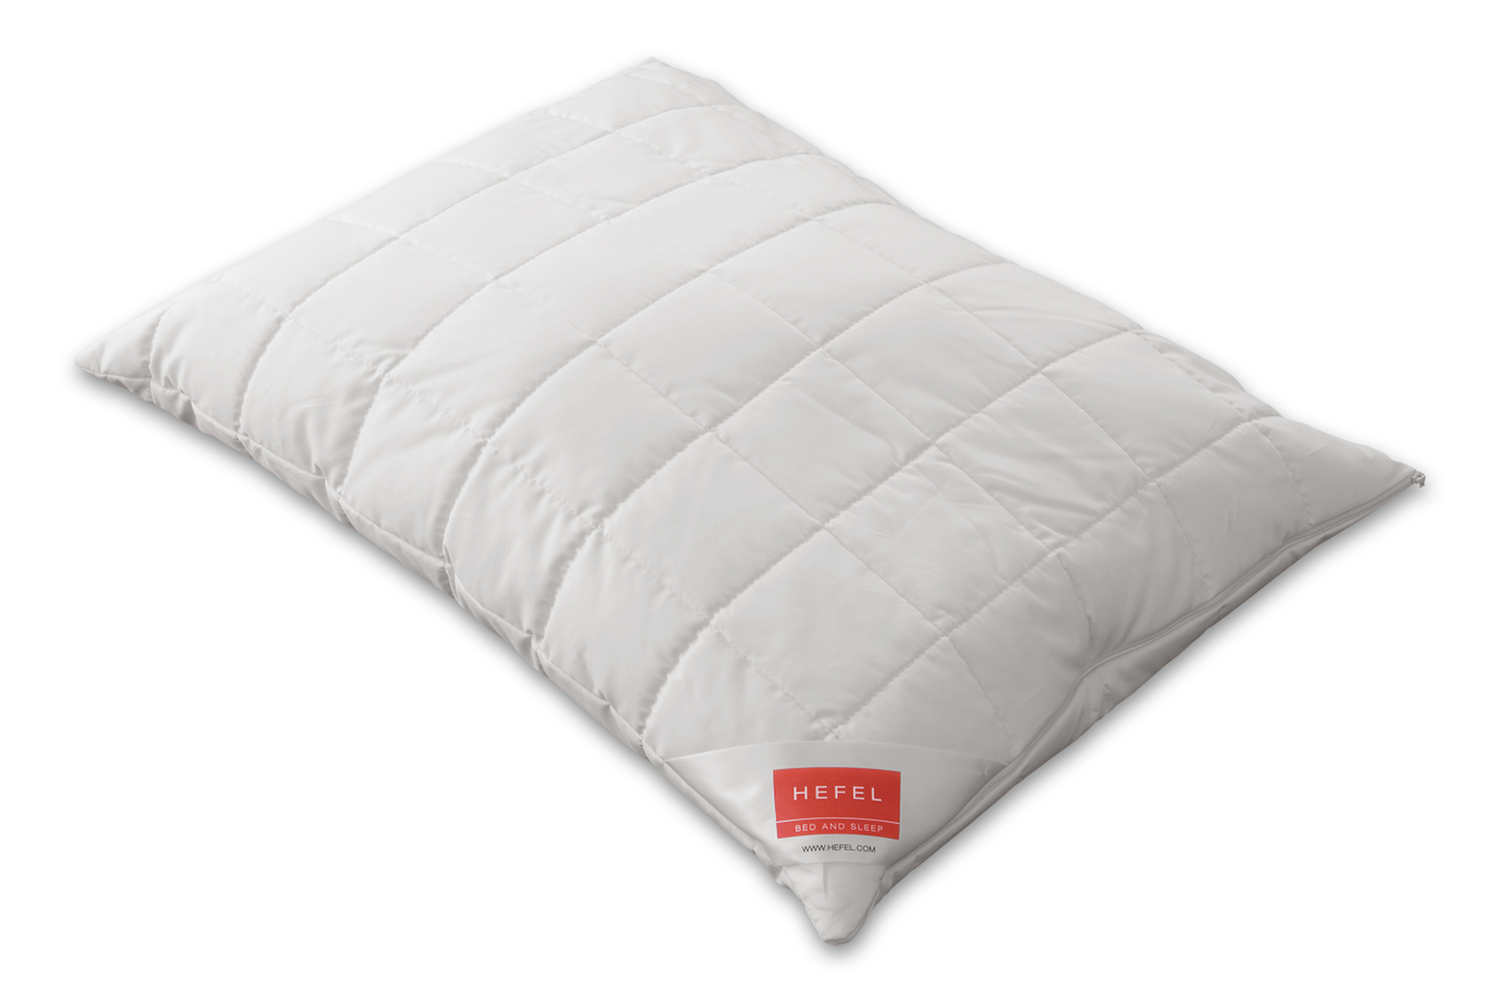 Hefel Bio Wool Pillows with a 100% Merino pure new wool filing create a particularly cozy sleeping environment.